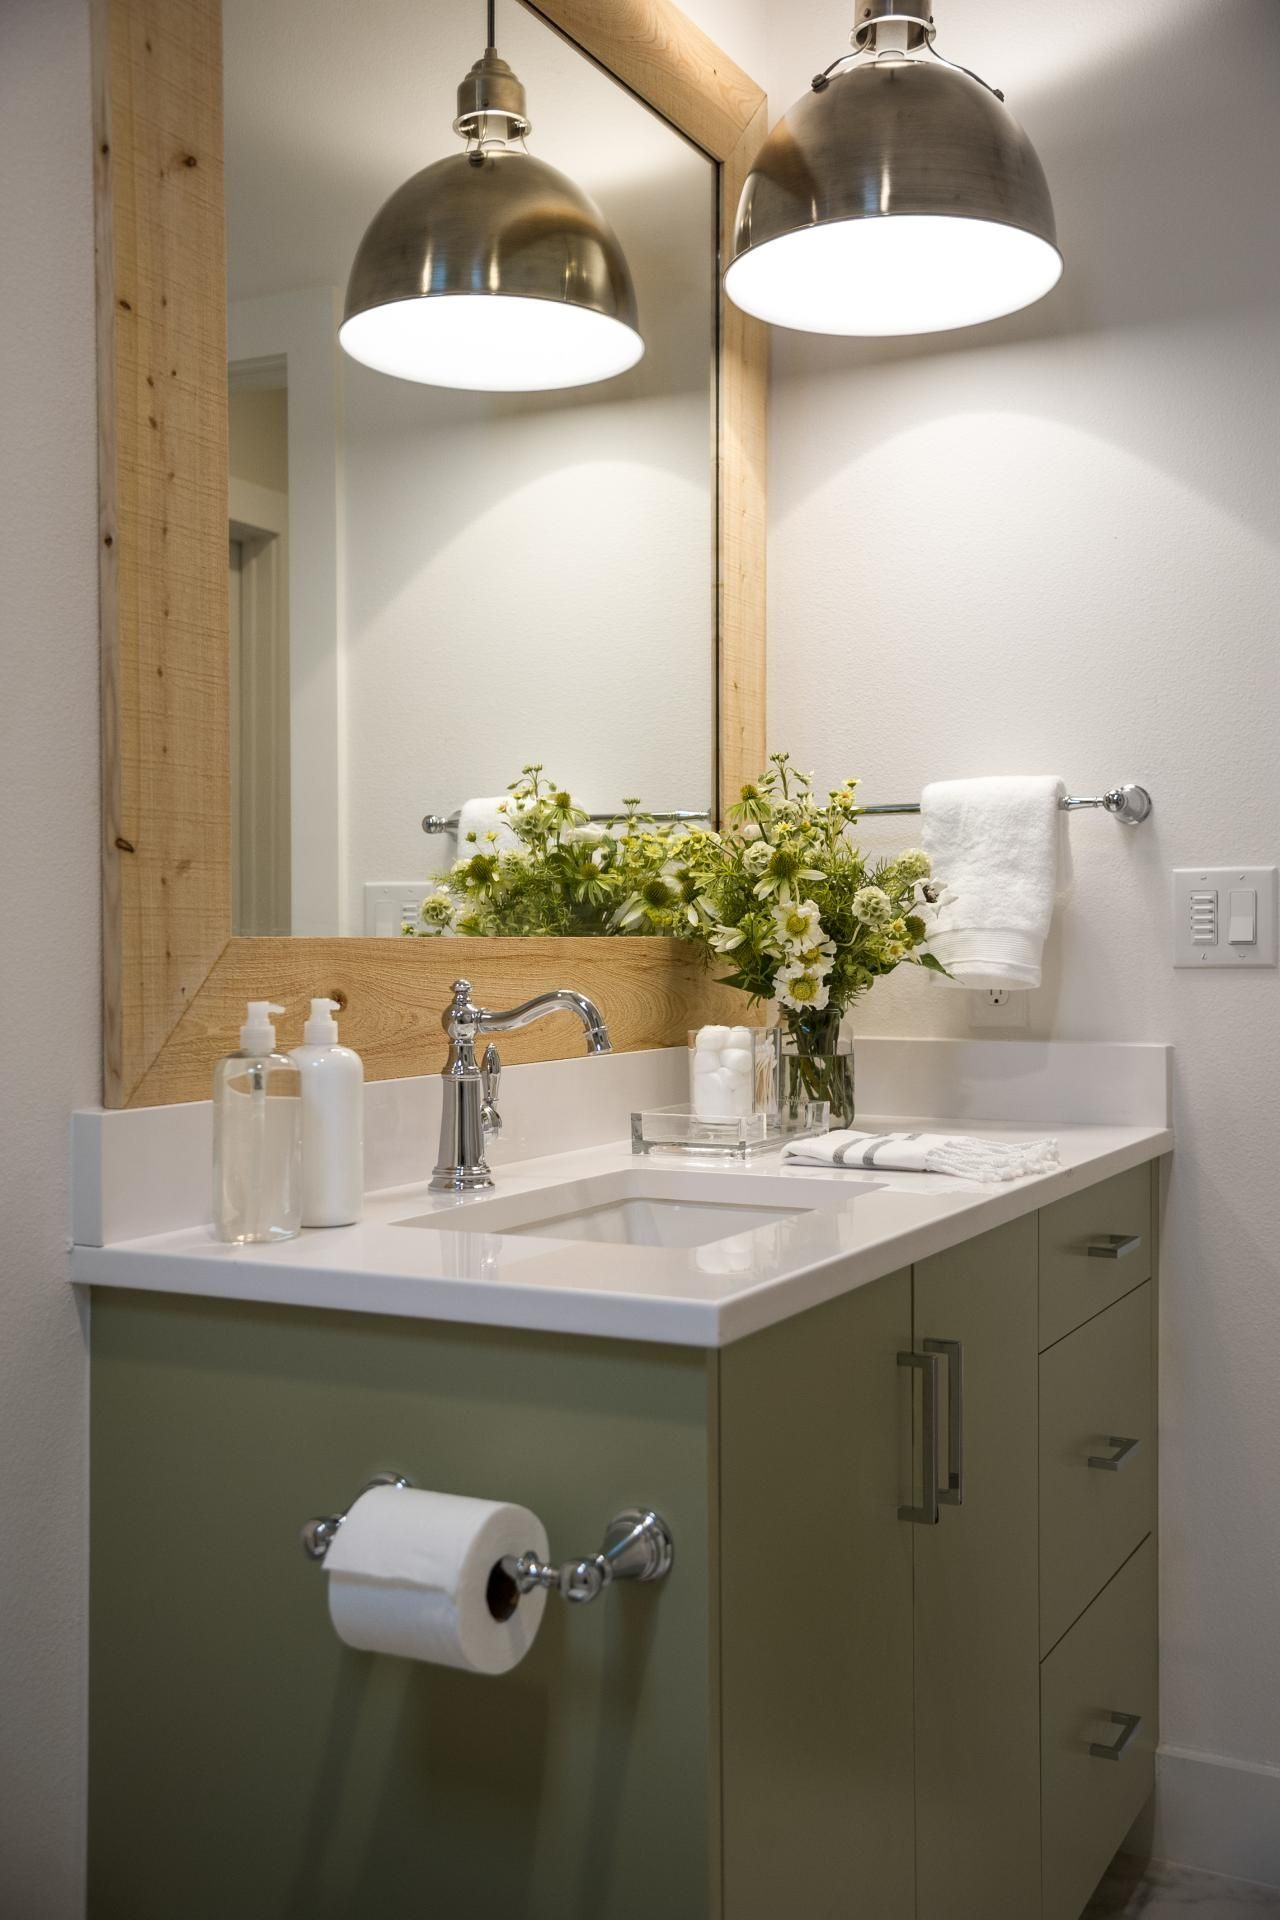 Hanging Pendant Lights Over Bathroom Vanity Phenomenal Pictures Of